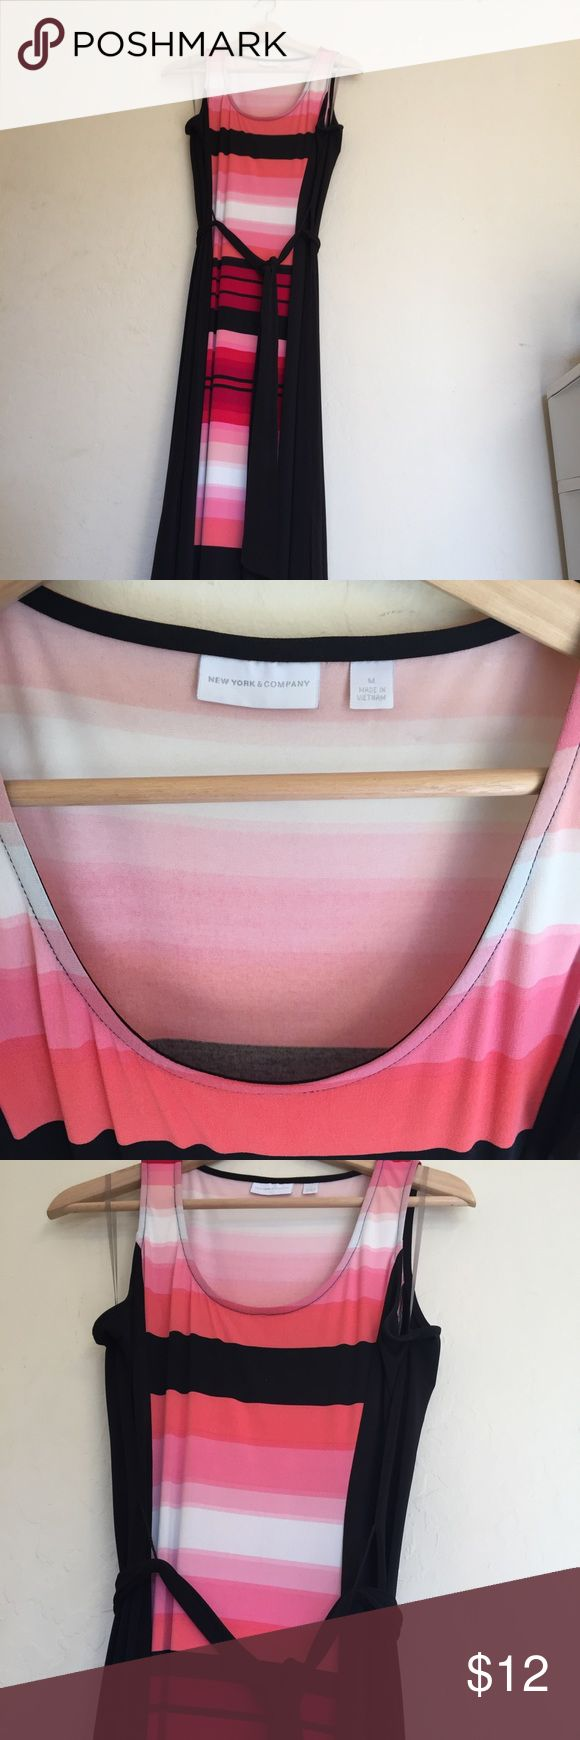 Maxi dress with tie belt Long black with pink blocking maxi dress. With two side slits and tie belt, very flattering. Stretchy 95% polyester 5% spandex NY&Co Dresses Maxi